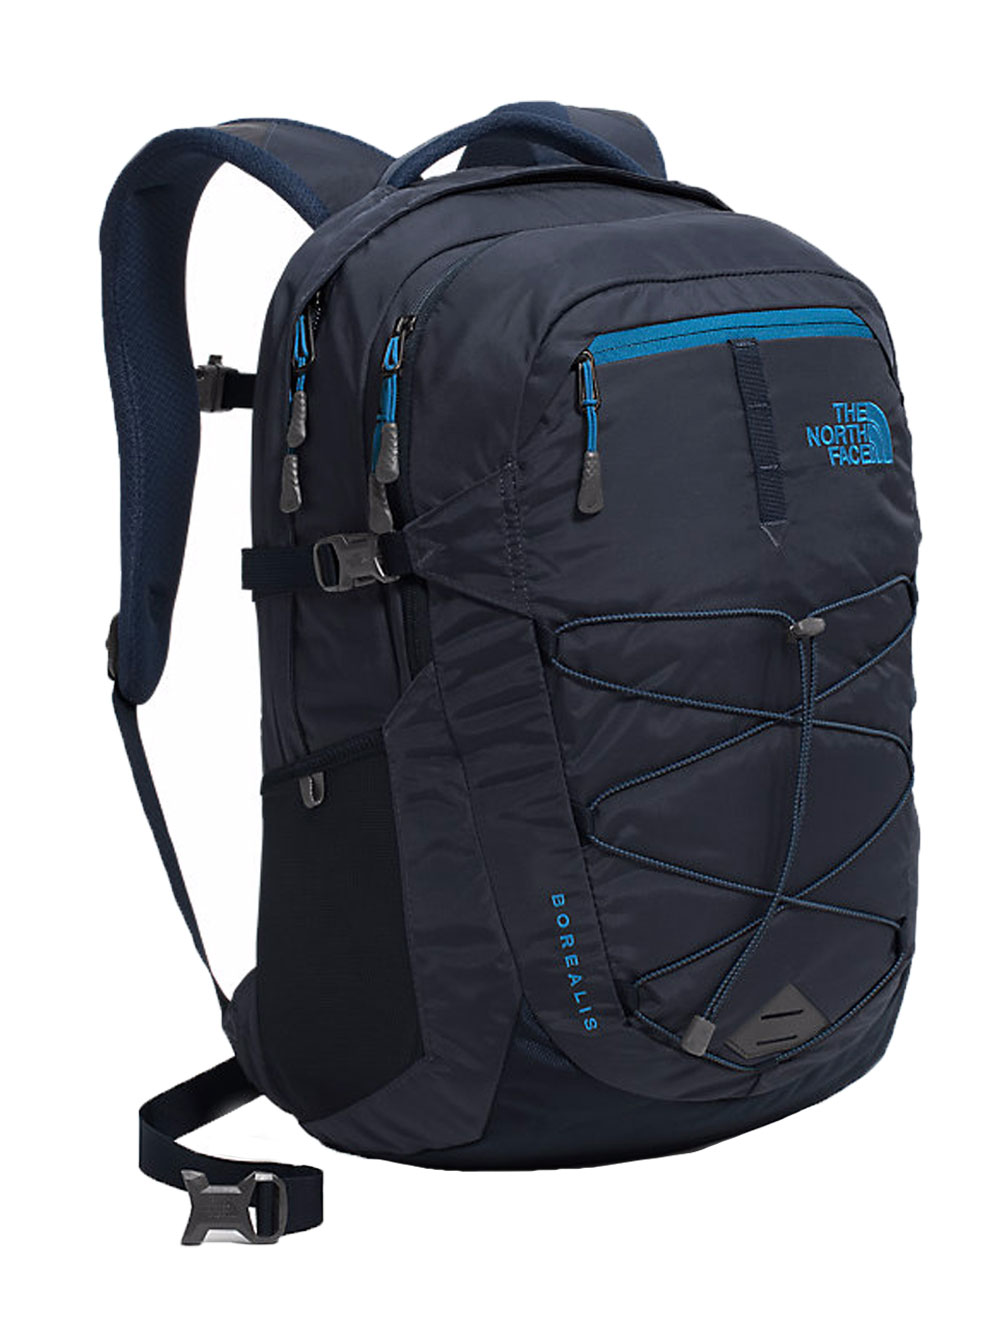 The North Face Borealis Backpack - urban navy/banff blue, one size